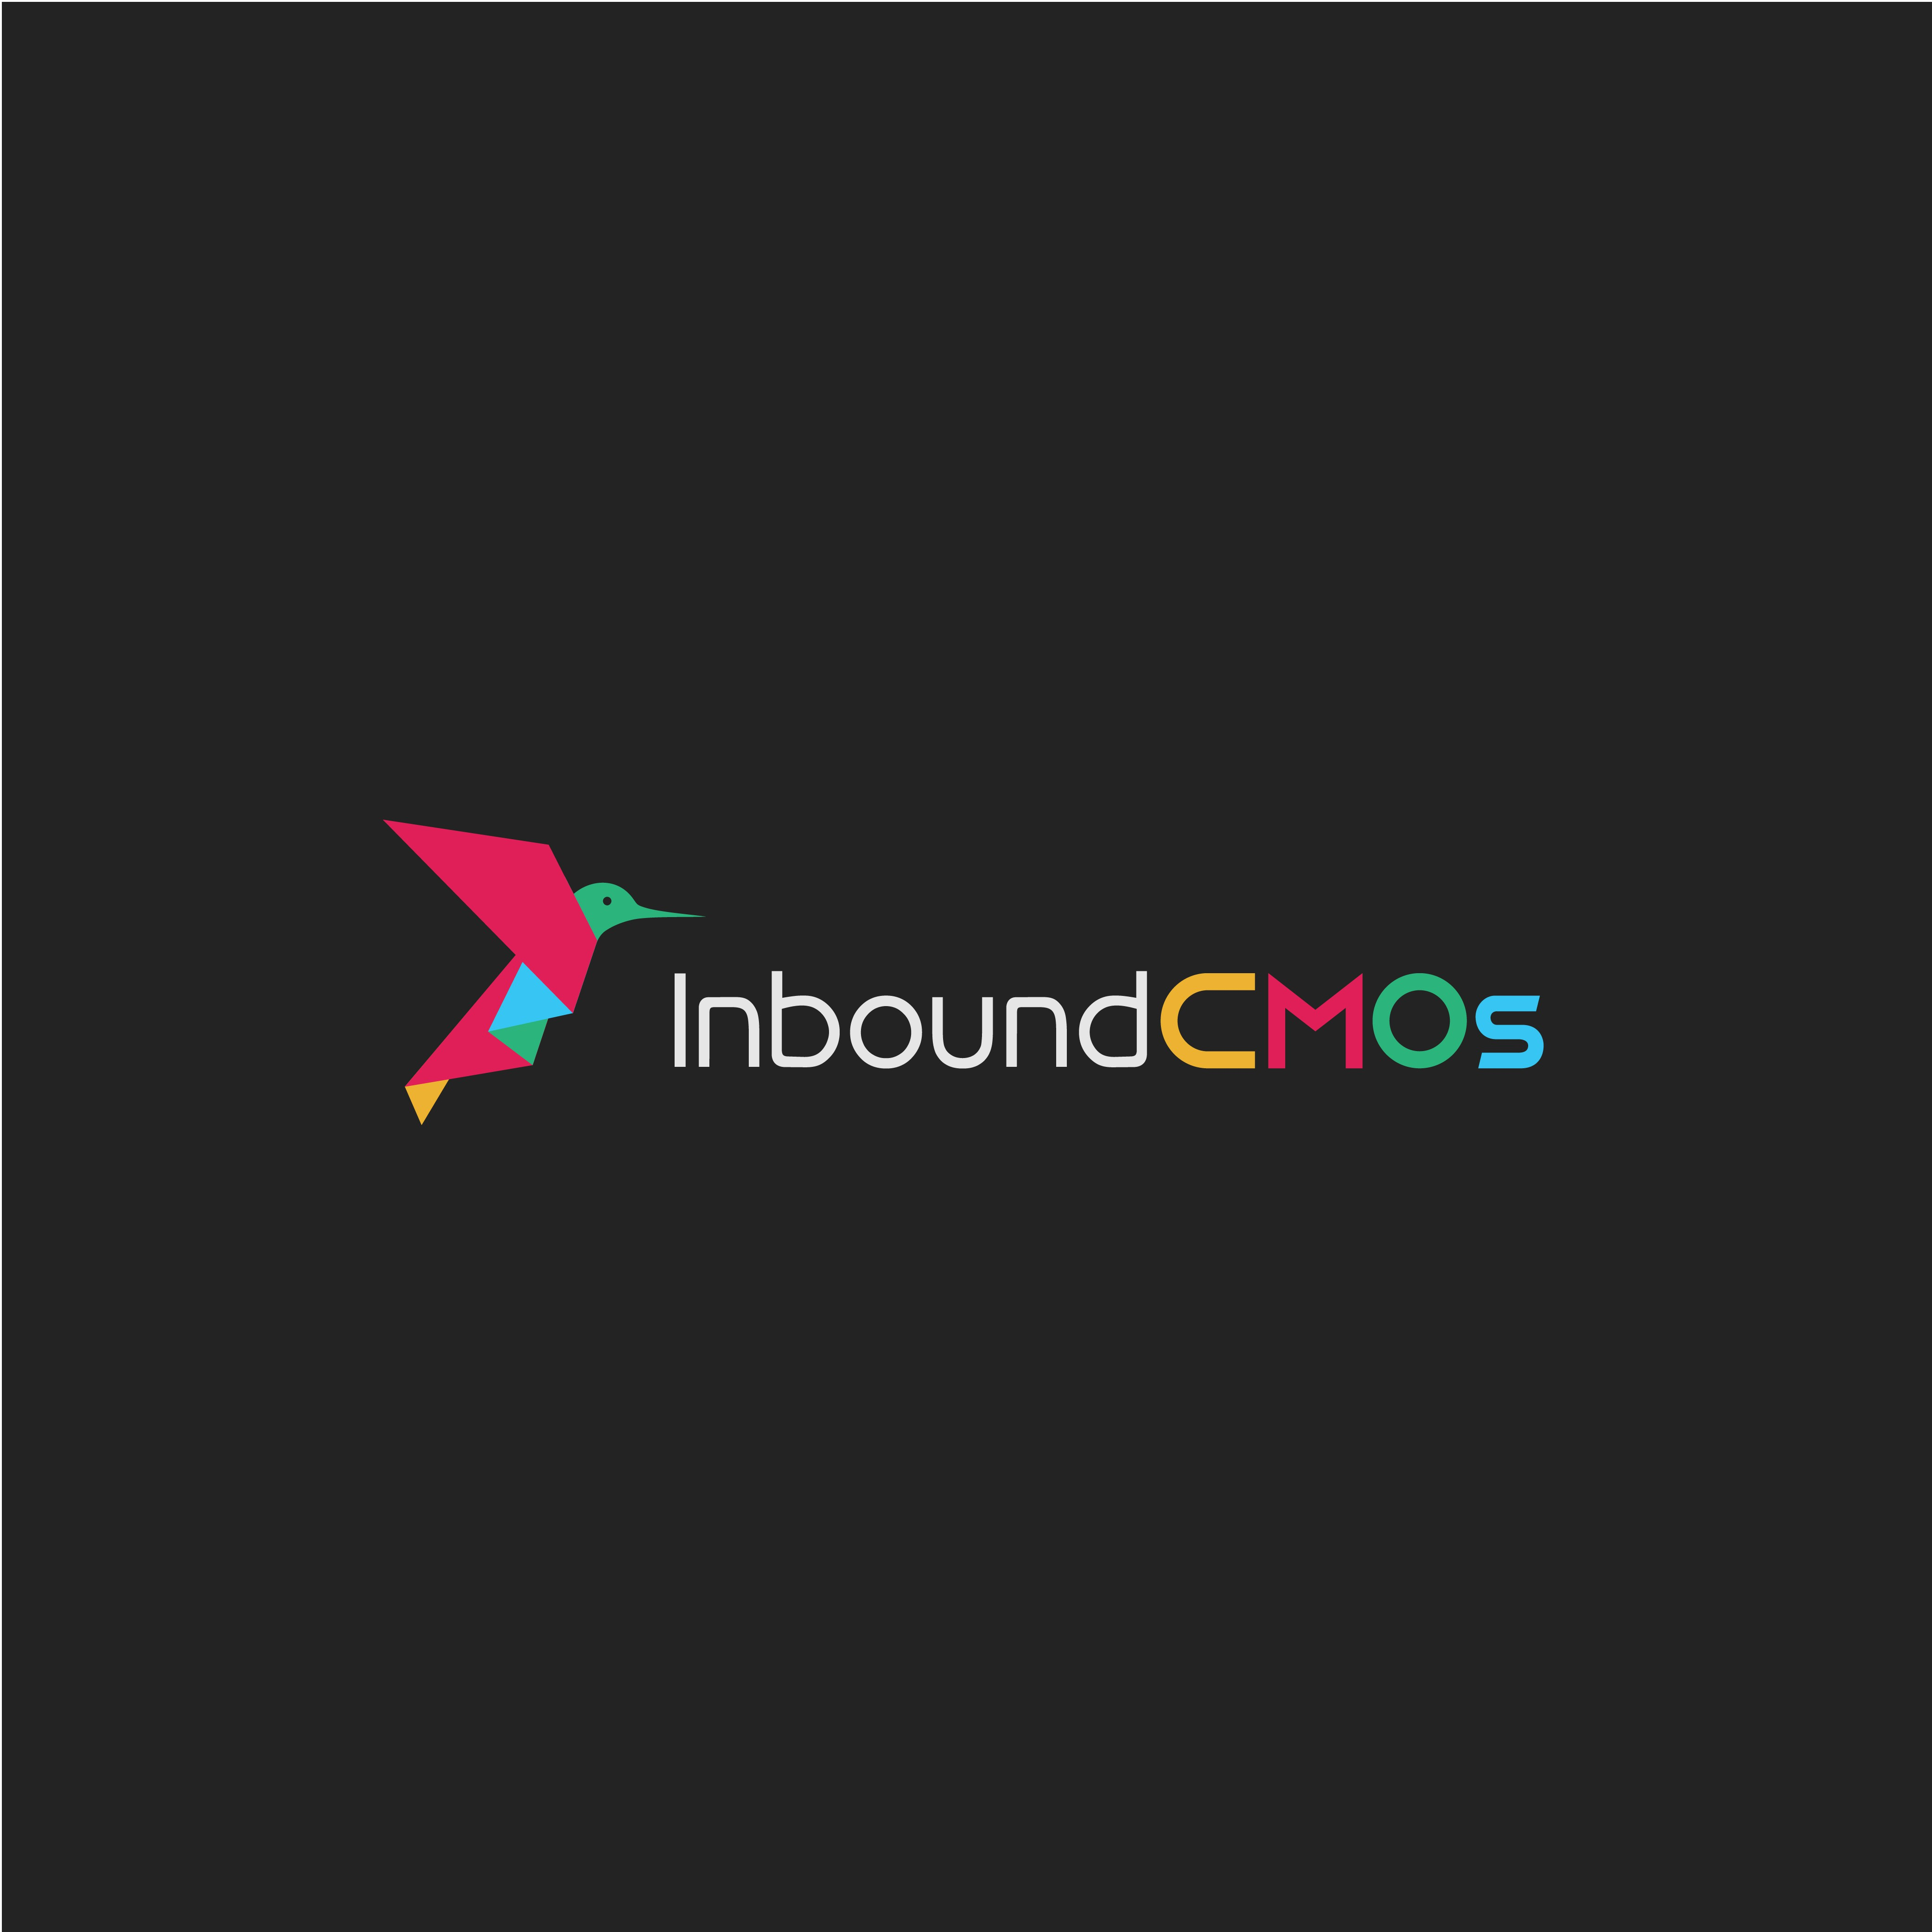 Inbound CMOs need a Logo...you think you're up for the challenge?